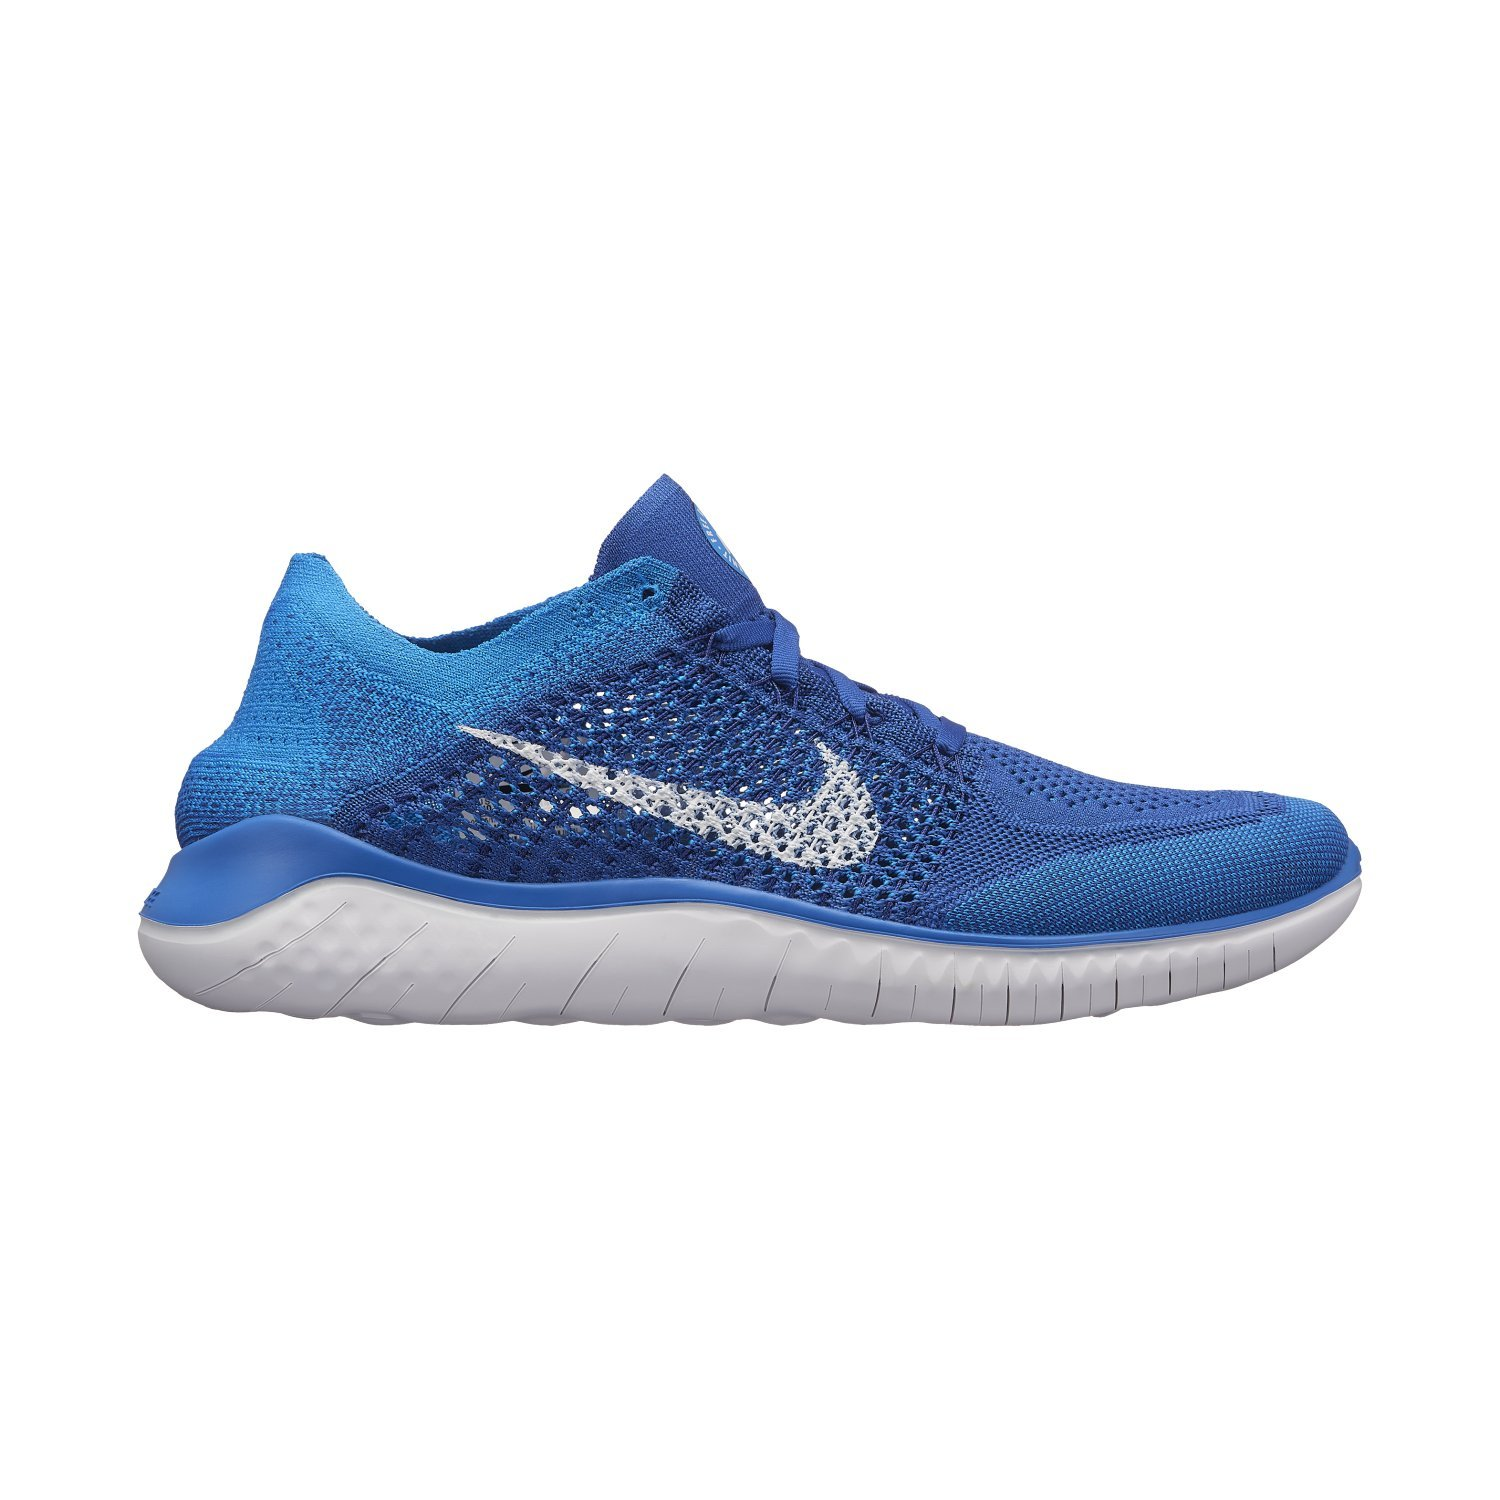 272cb1b95454 NIKE Men s Free Rn Flyknit 2018 Game Royal White Photo Blue Nylon Running  Shoes 9 D(M) US